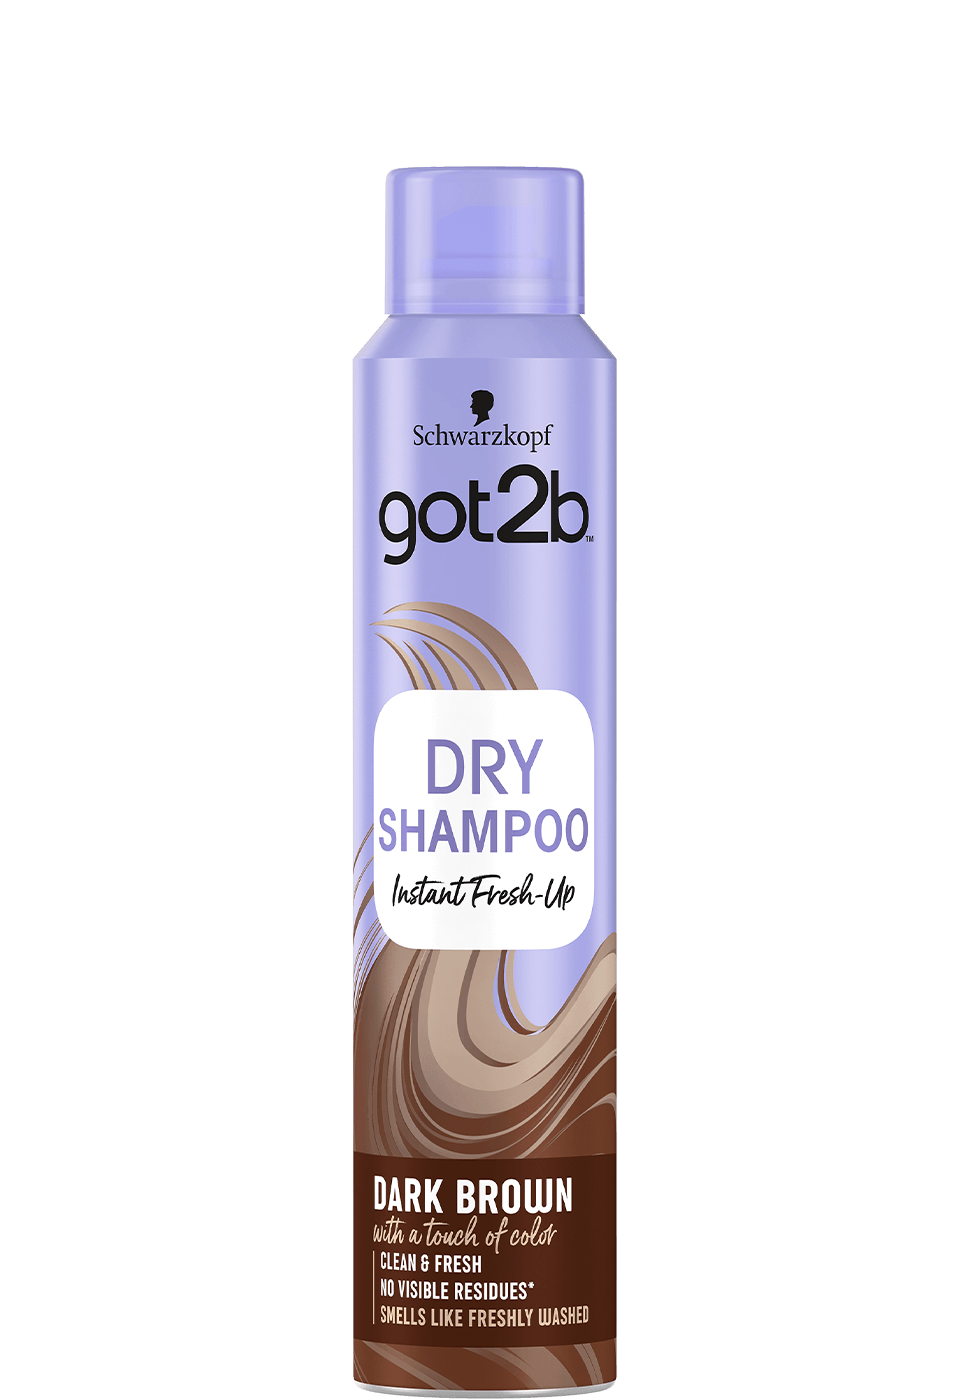 got2b_com_dry_shampoo_dark_brown_970x1400